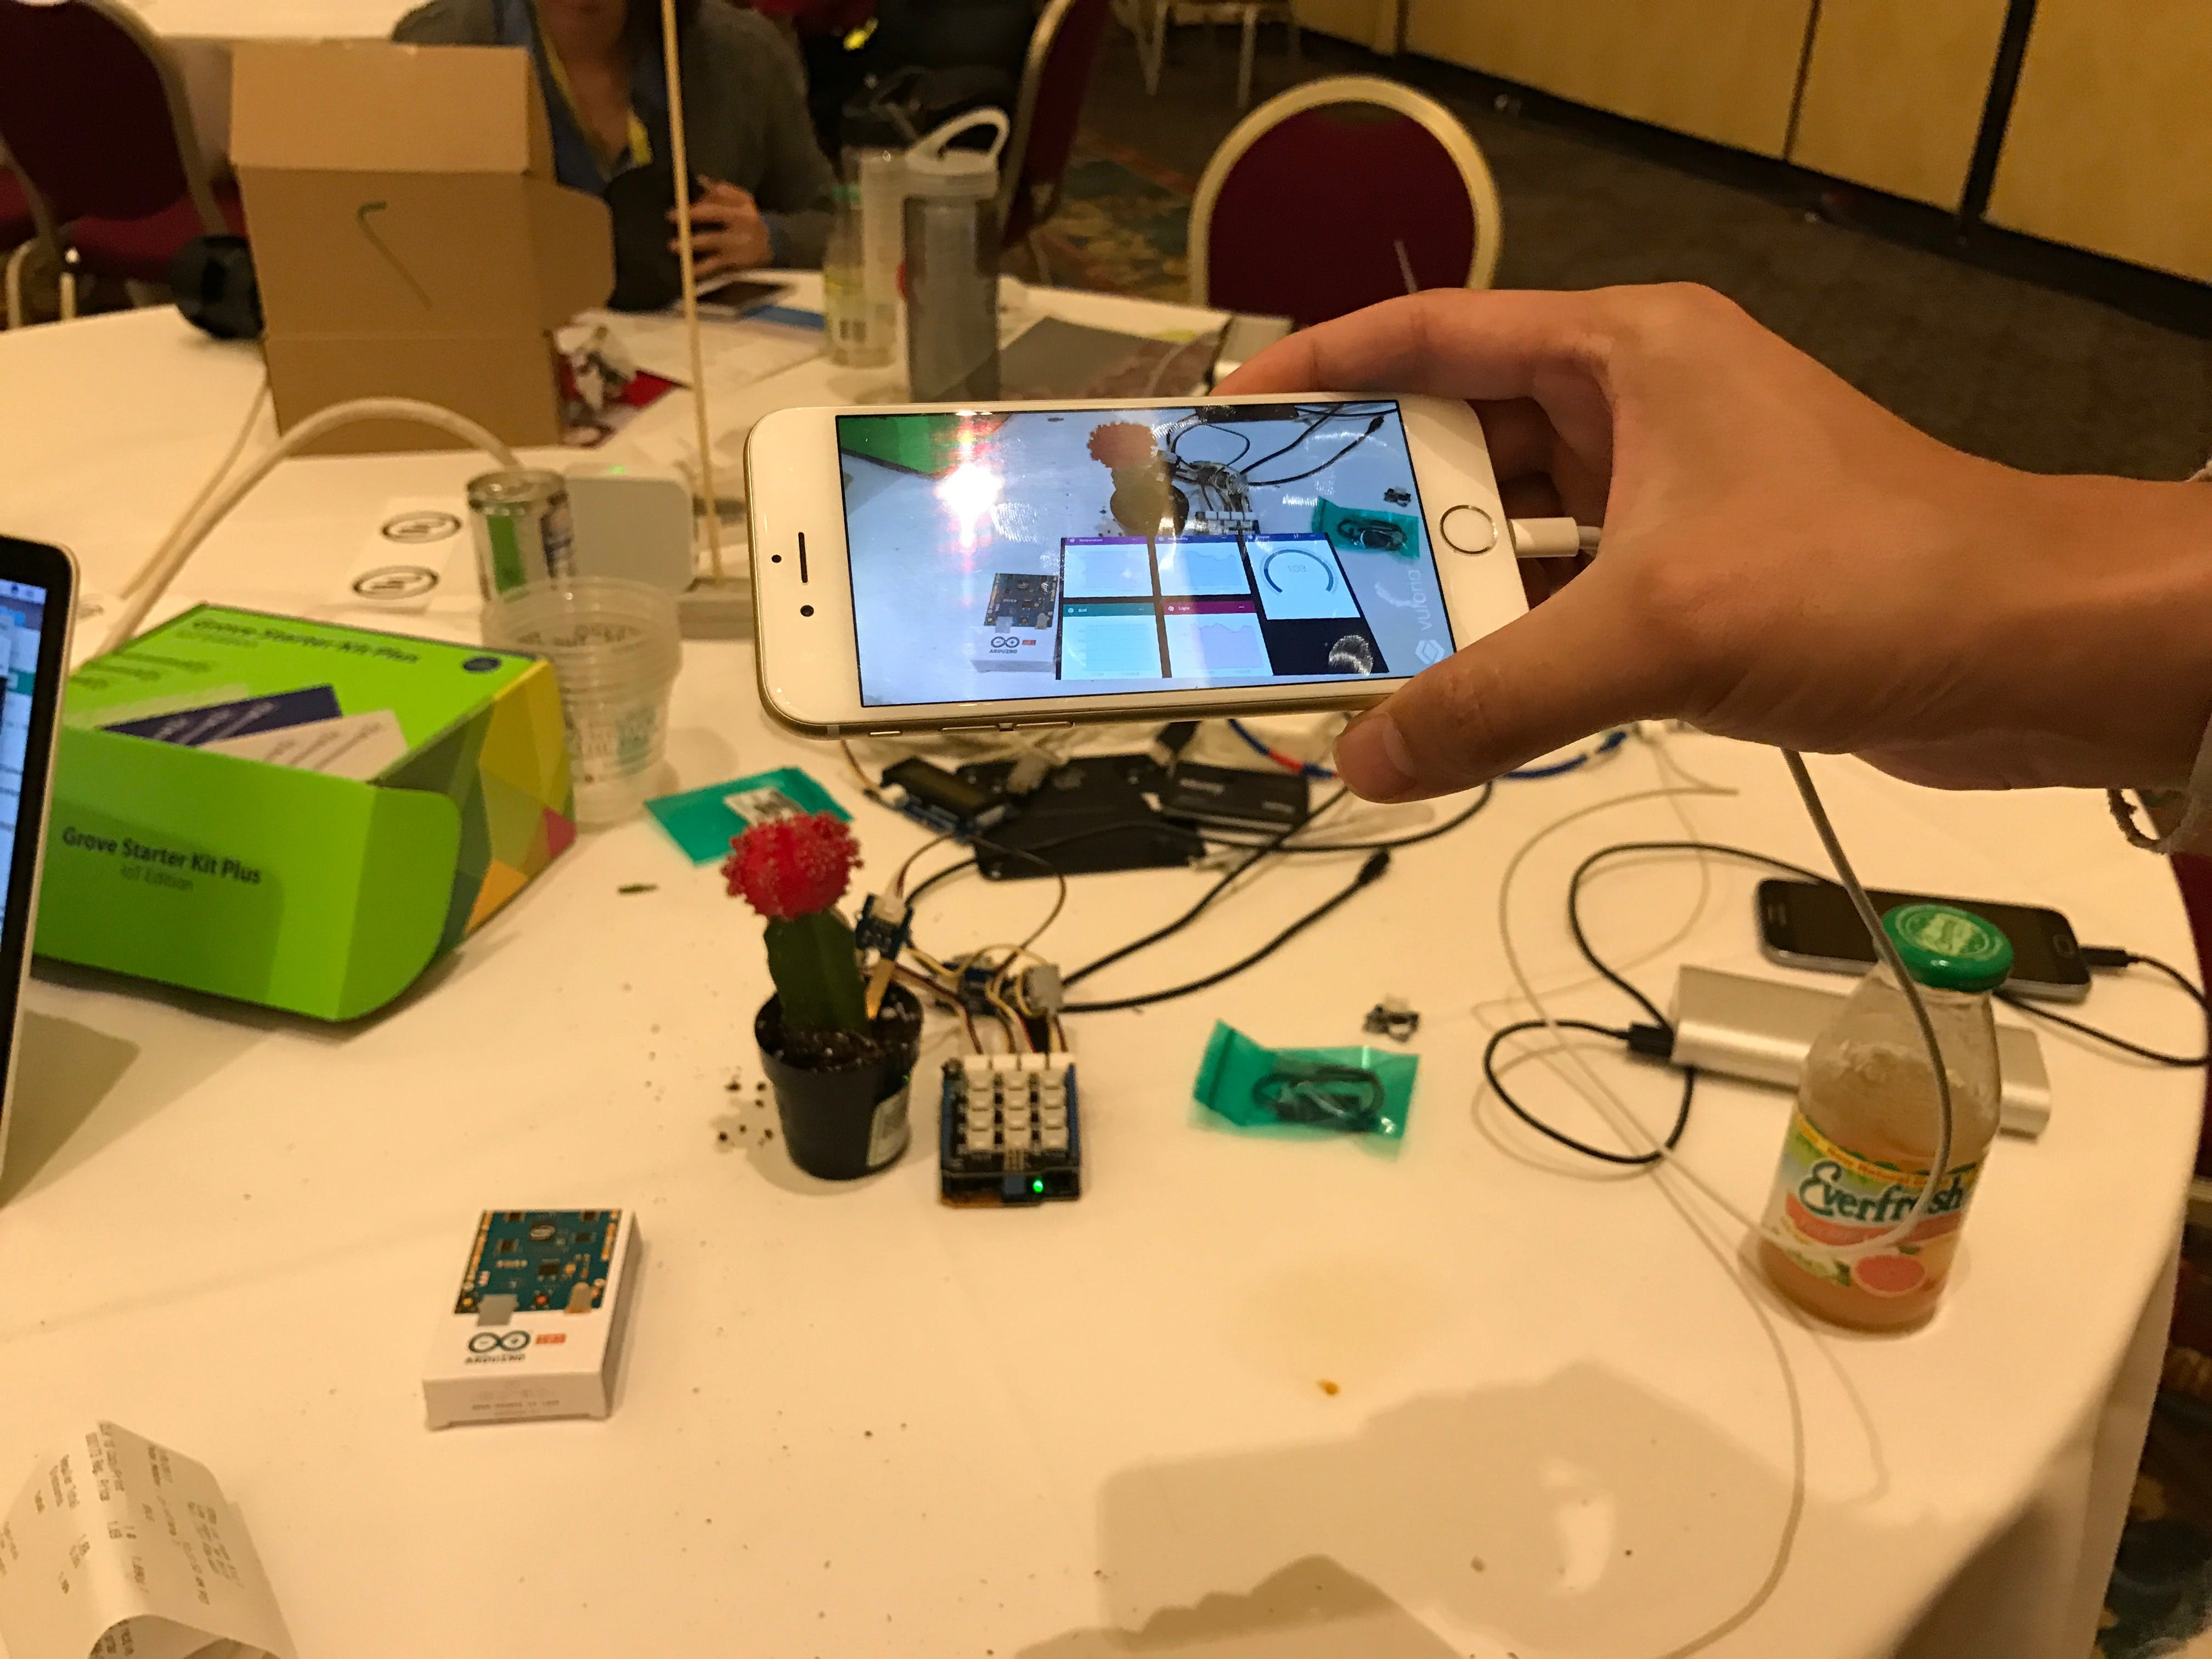 AR viewing the sensor data for the tree